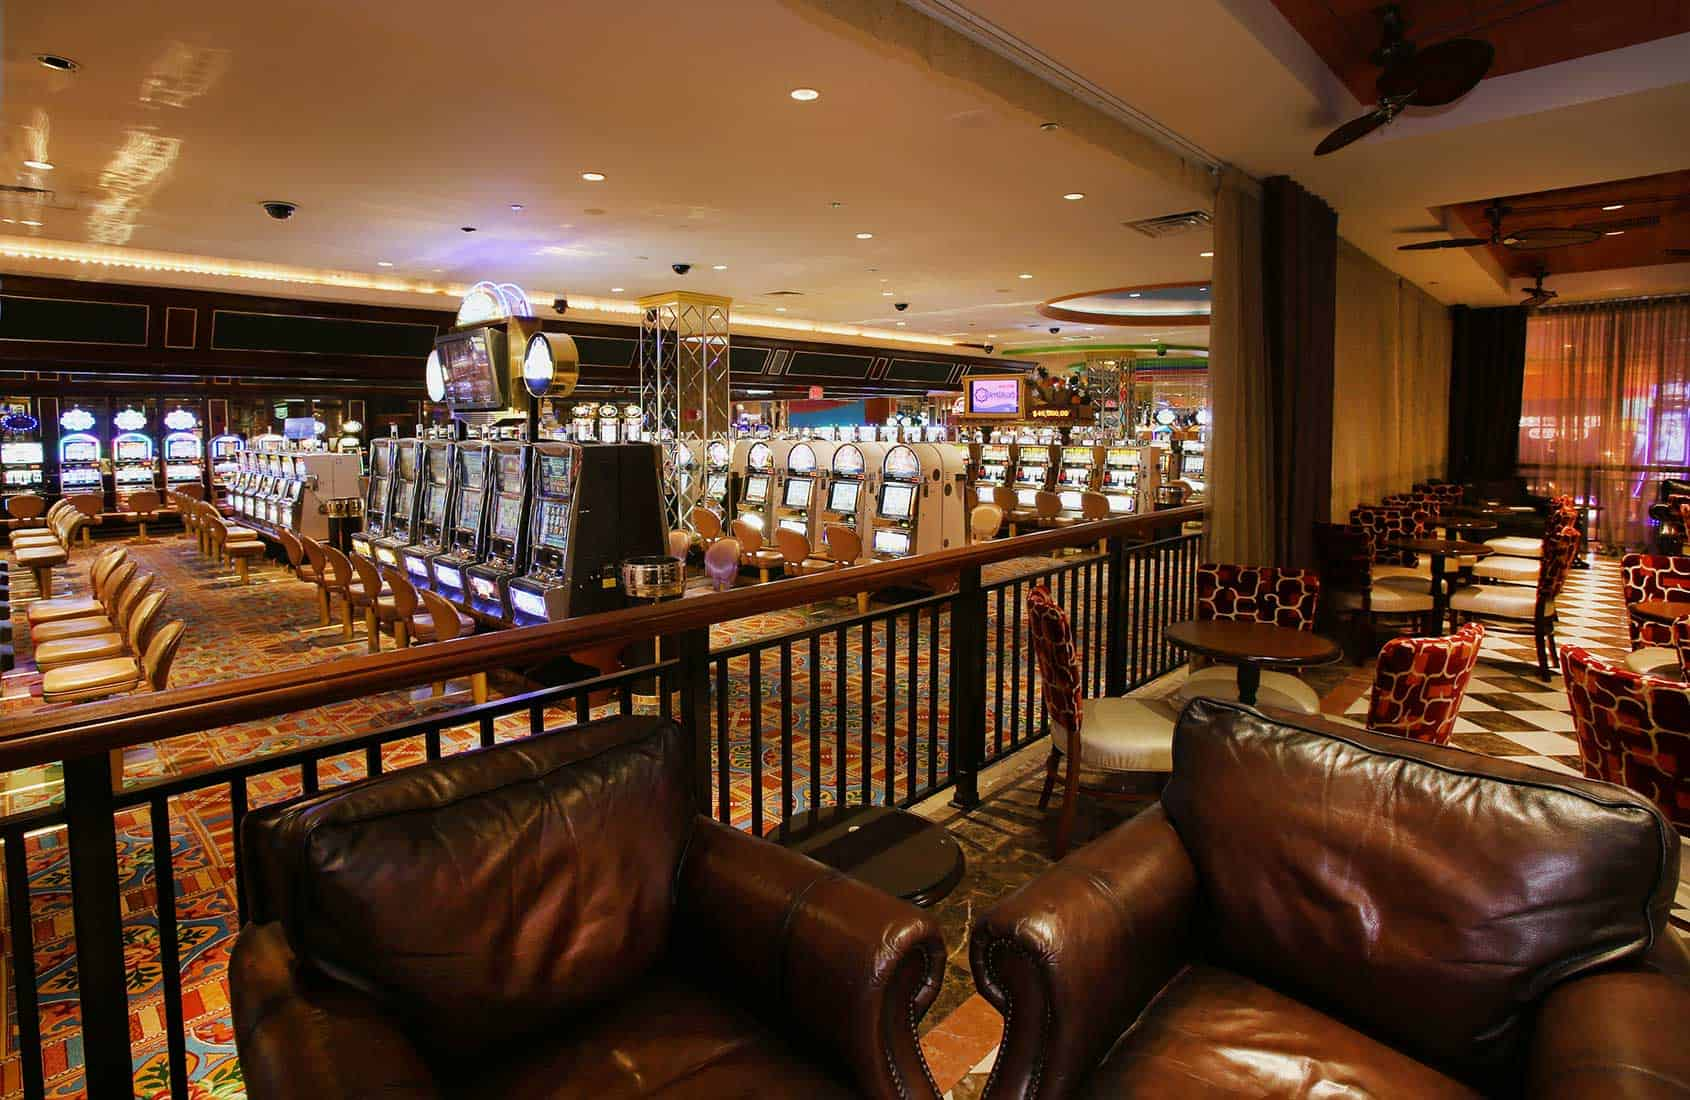 Double Ball Roulette at Tropicana: A New Way to Play a Classic Casino Game